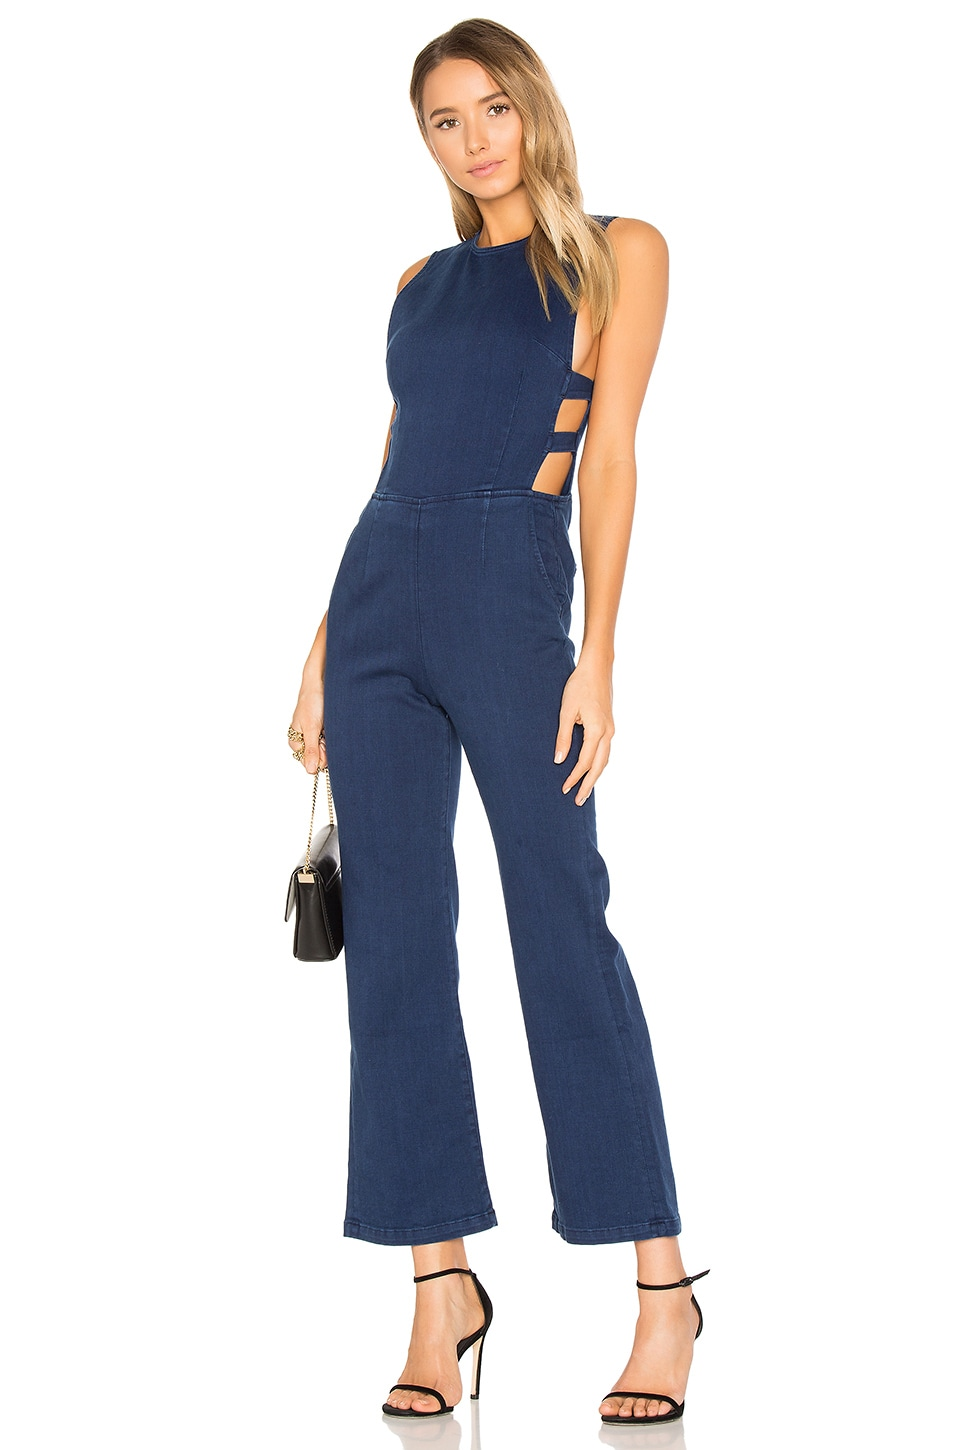 3x1 Tabby Jumpsuit in Rydell